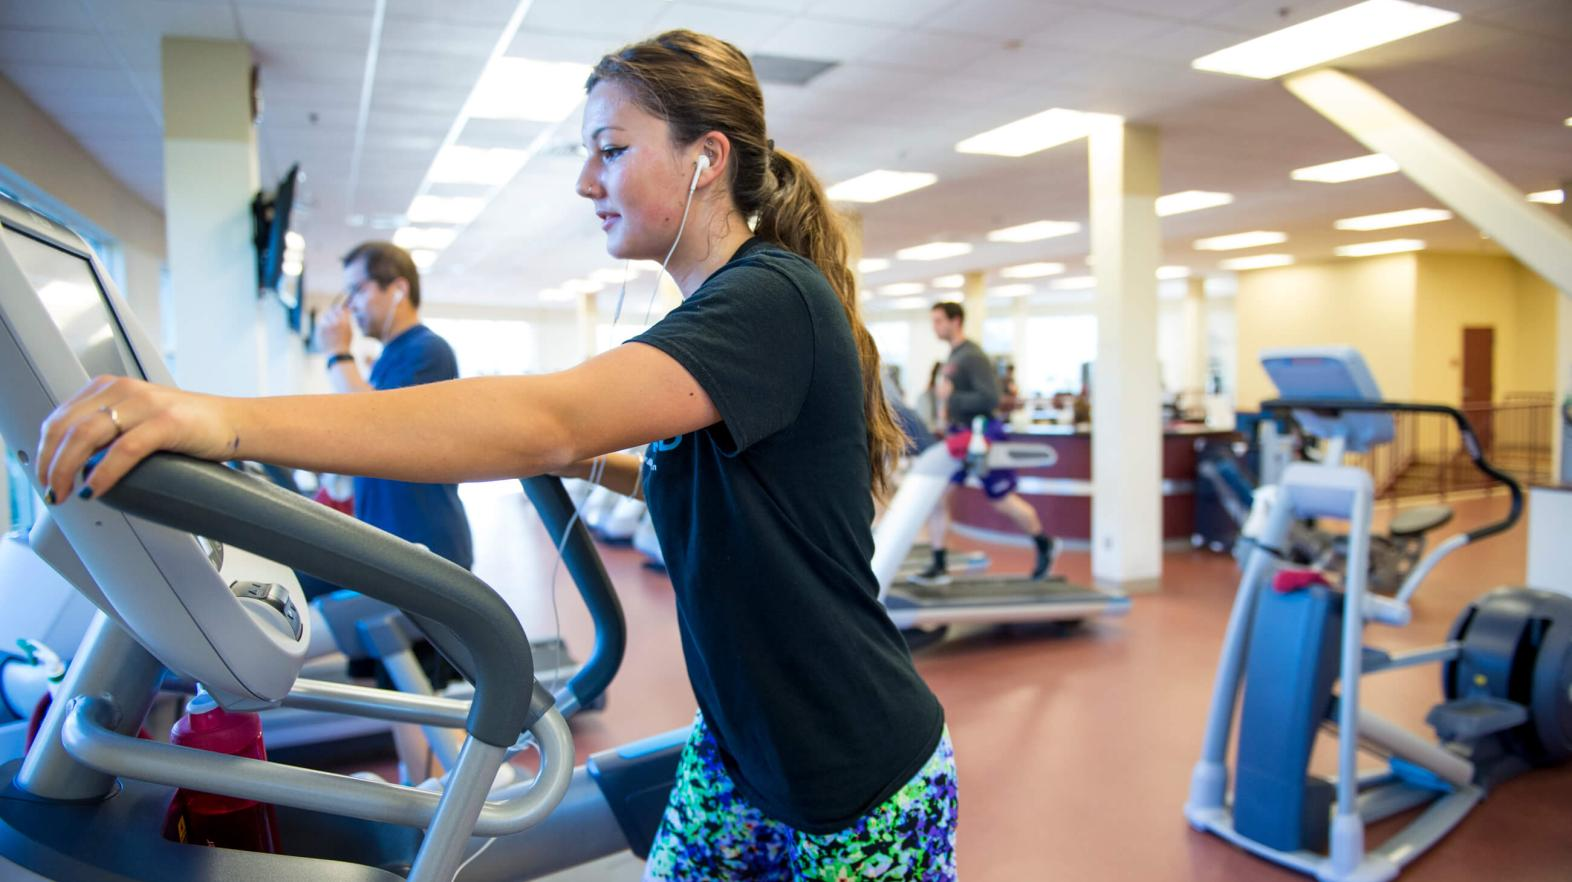 A young woman works out on an elliptical.